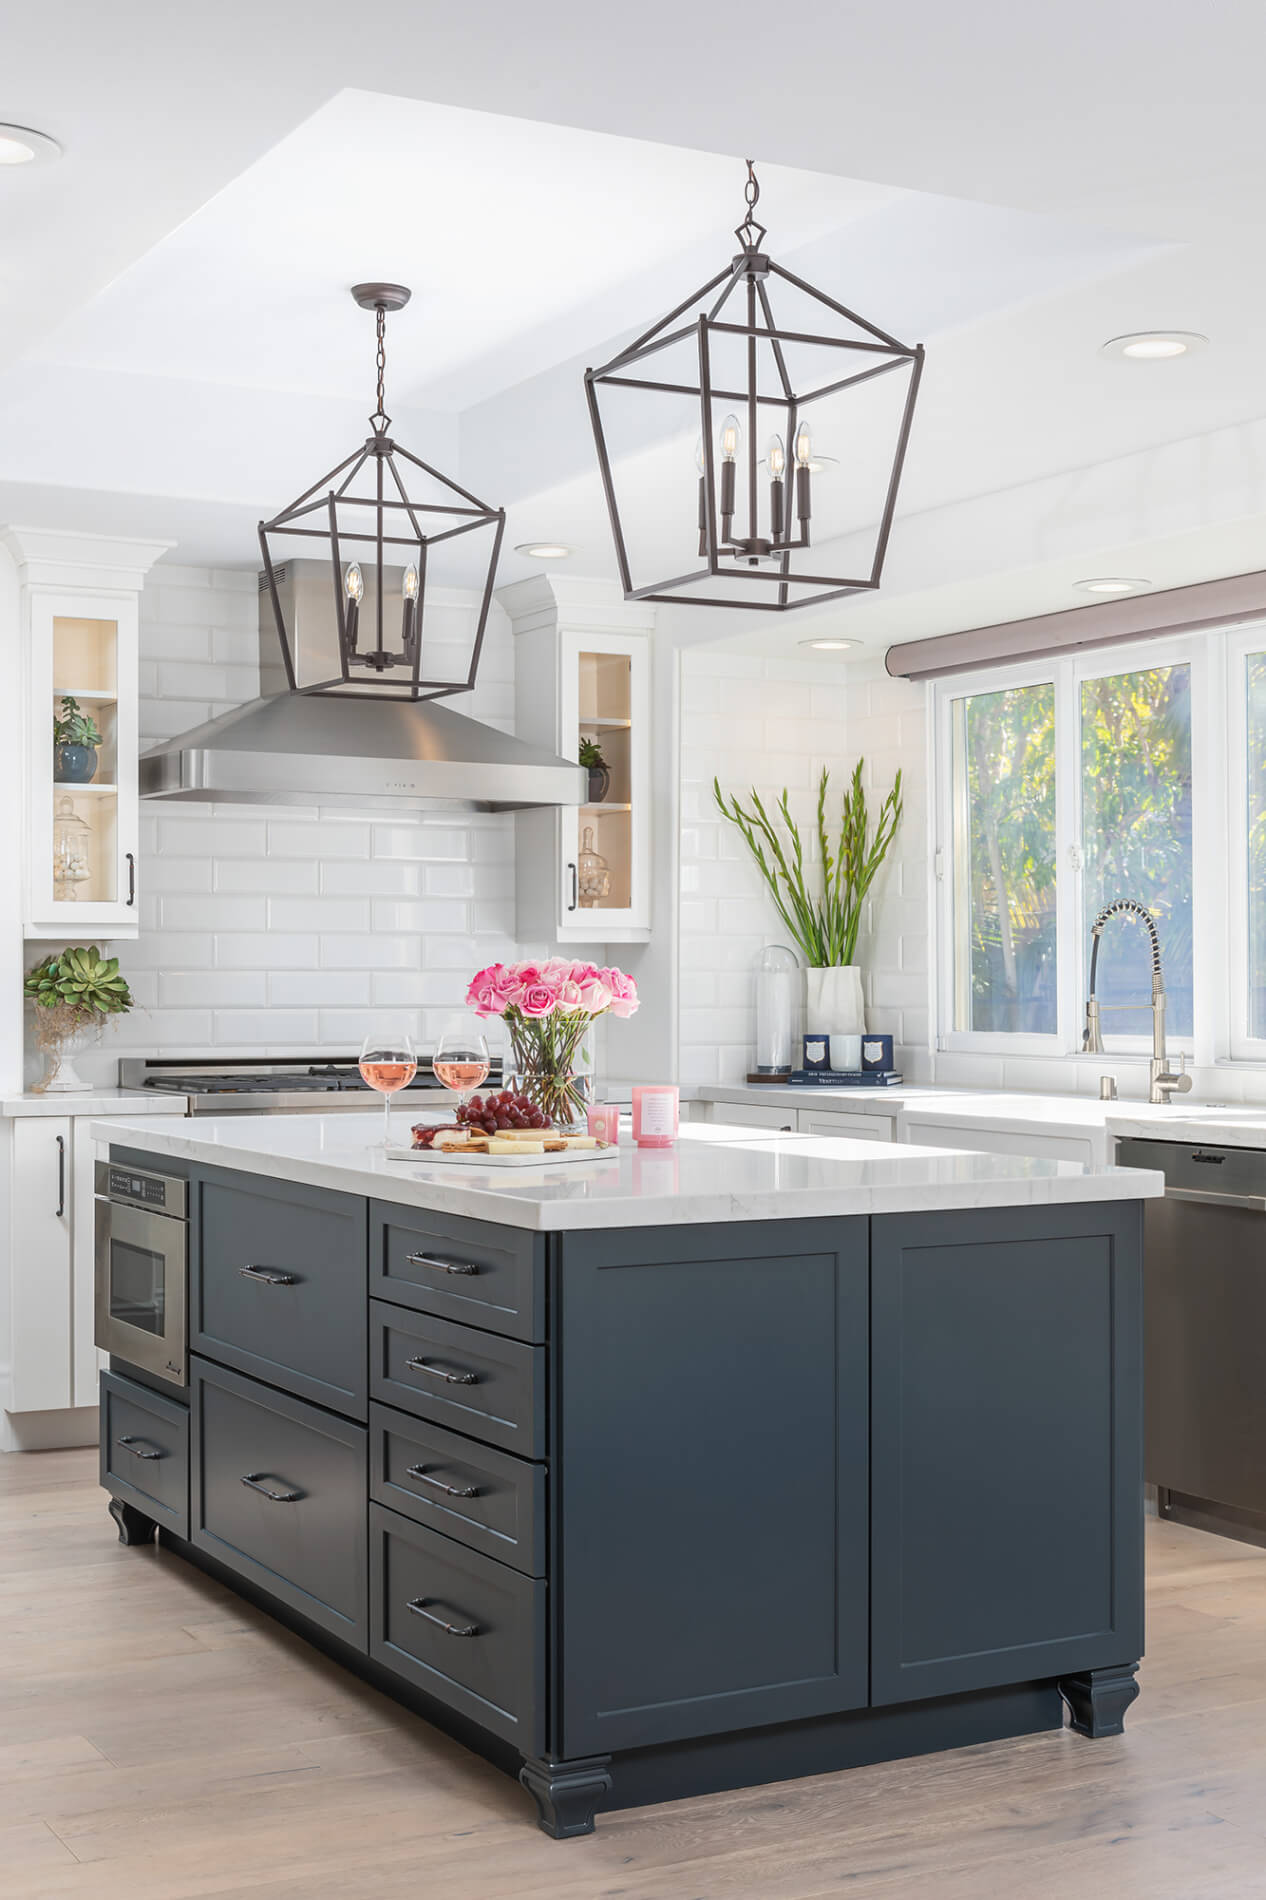 Kitchen island design and features